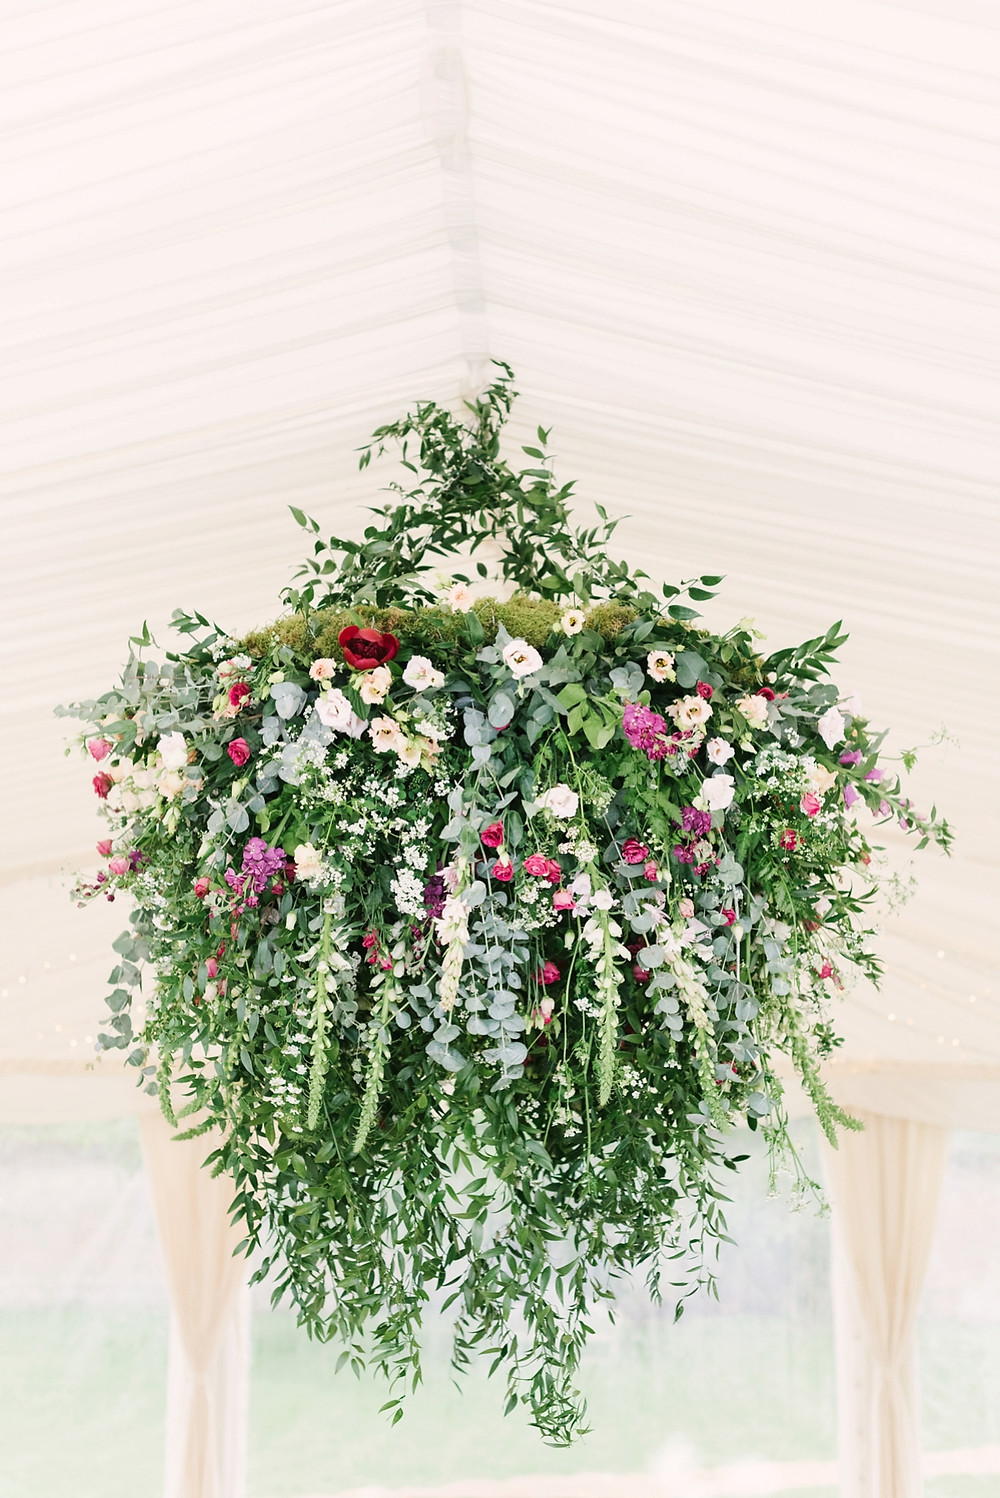 Hanging floral installation in a marquee. Foliage, roses and foxgloves in reds, whites and purples